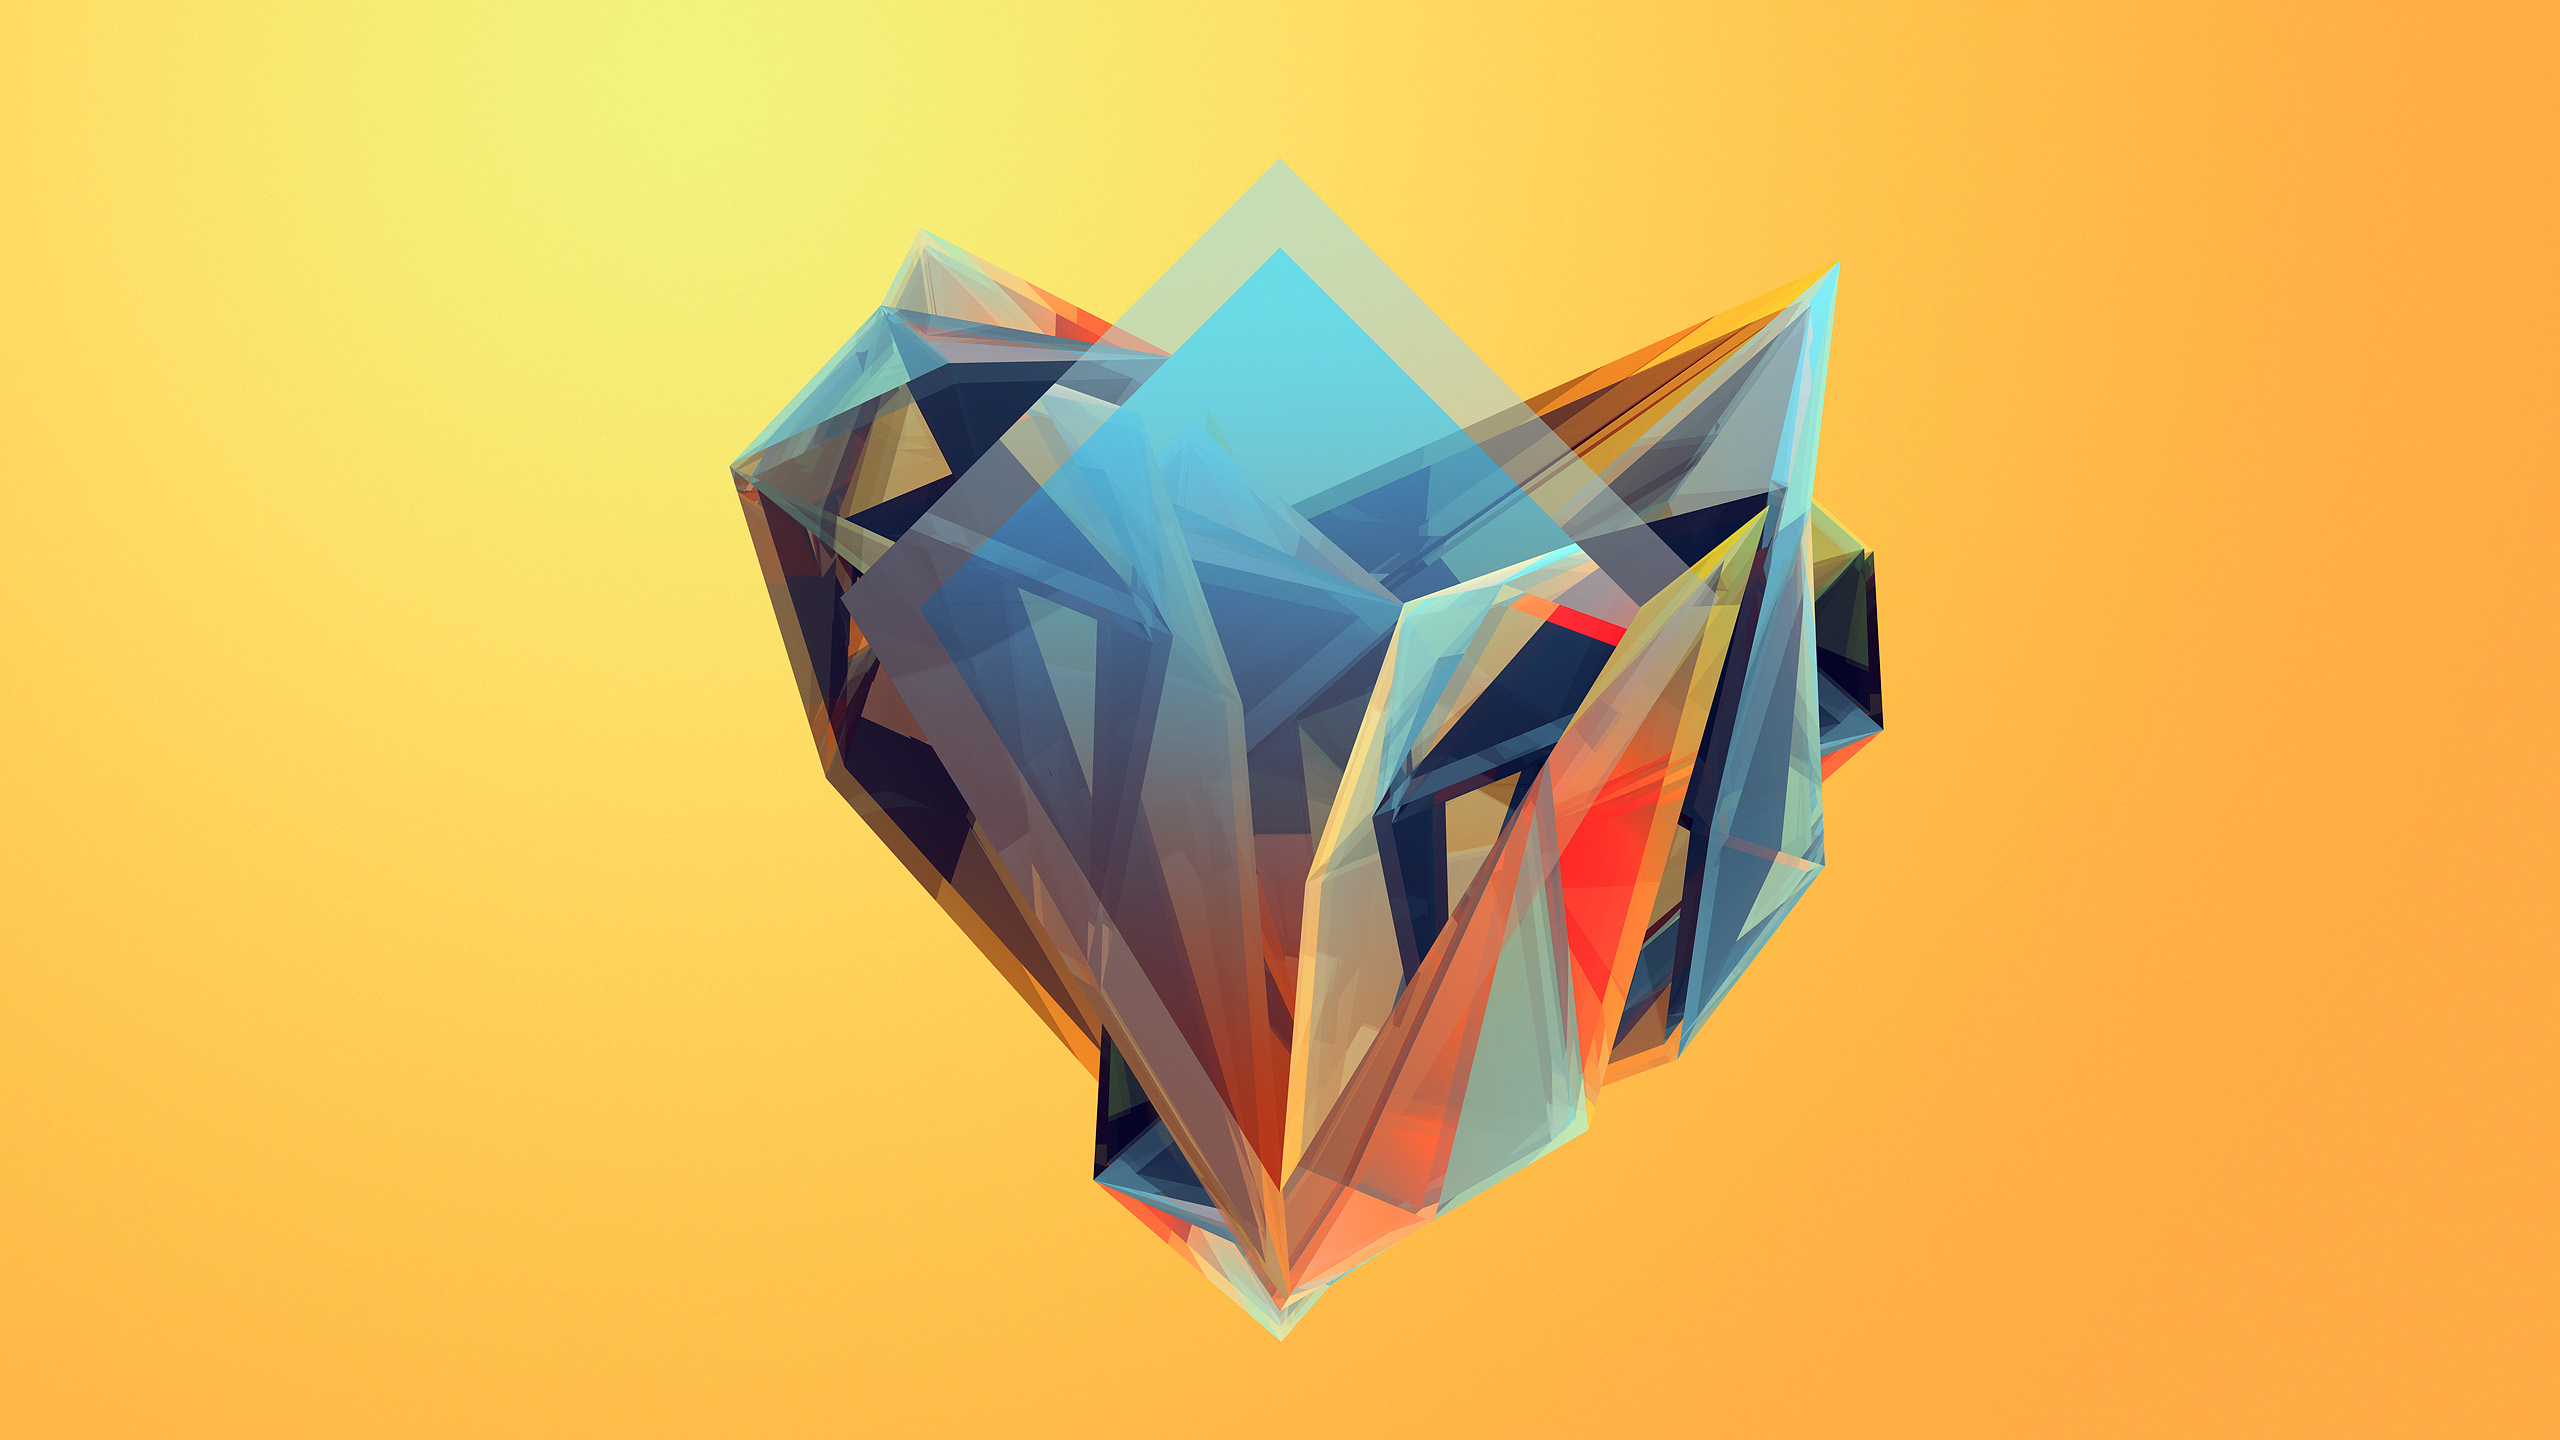 hd ismusztwtdvivxqerseh wallpaper best ultra download diamond polygon abstract